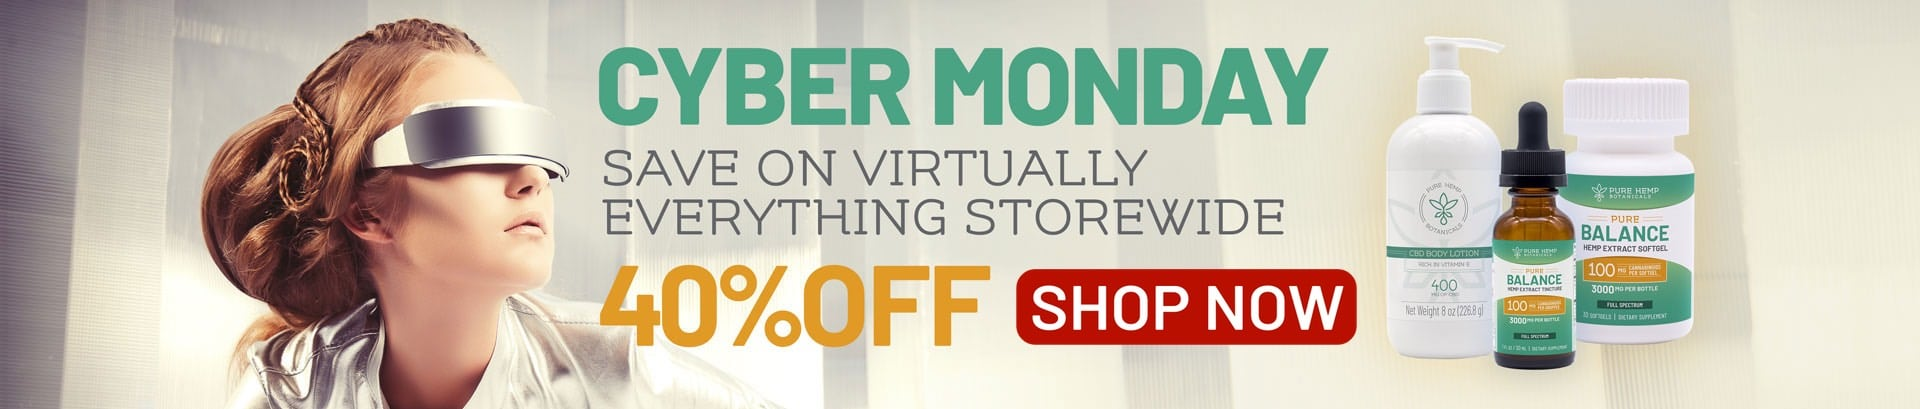 Cyber Monday CBD On Sale